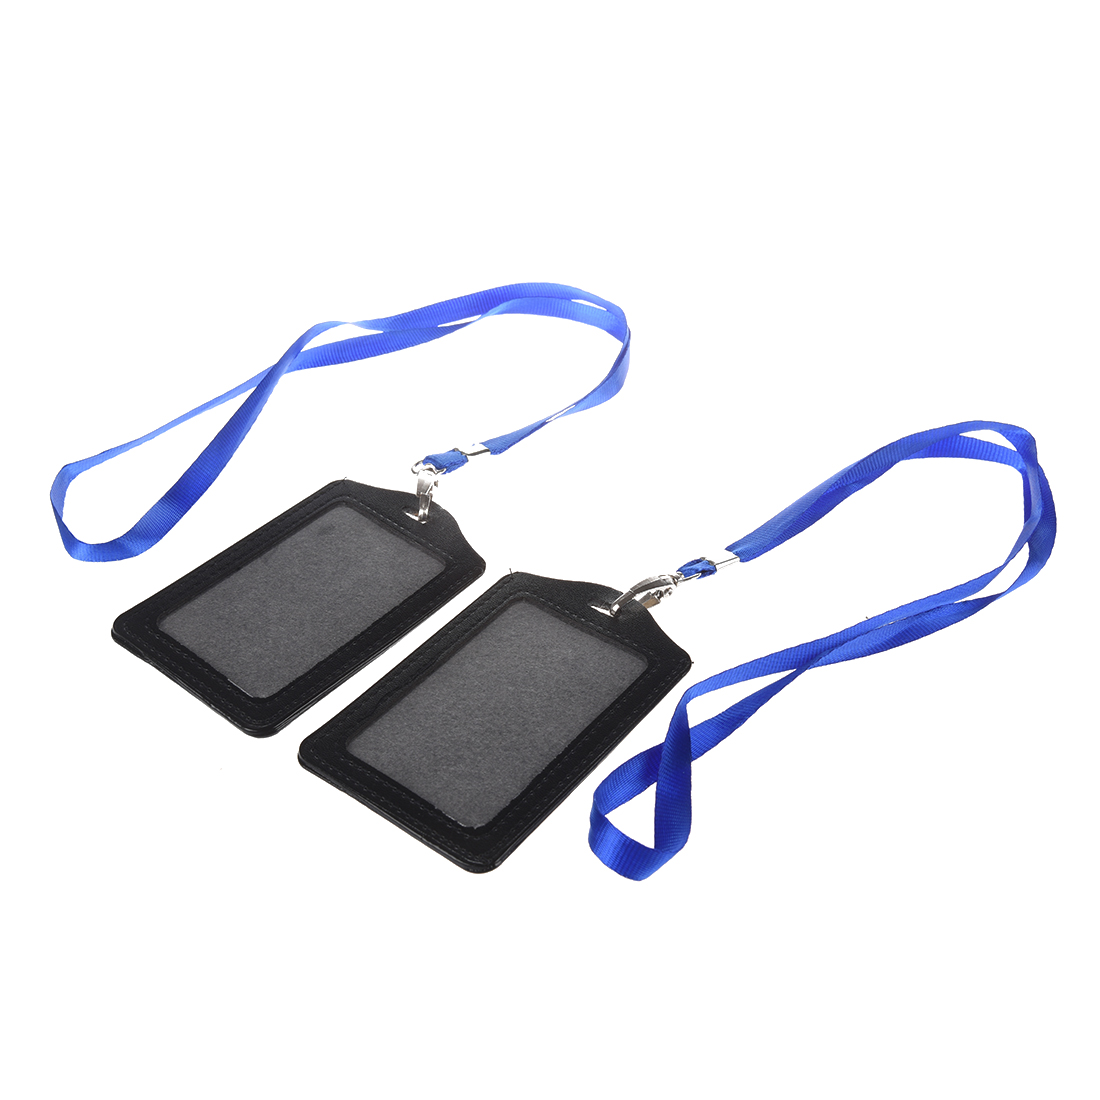 Faux leather business id badge card vertical holders 2 pcs w4w7 ebay faux leather id badge card holder is a great choice for workers to hold their id card work card business cards etc reheart Choice Image